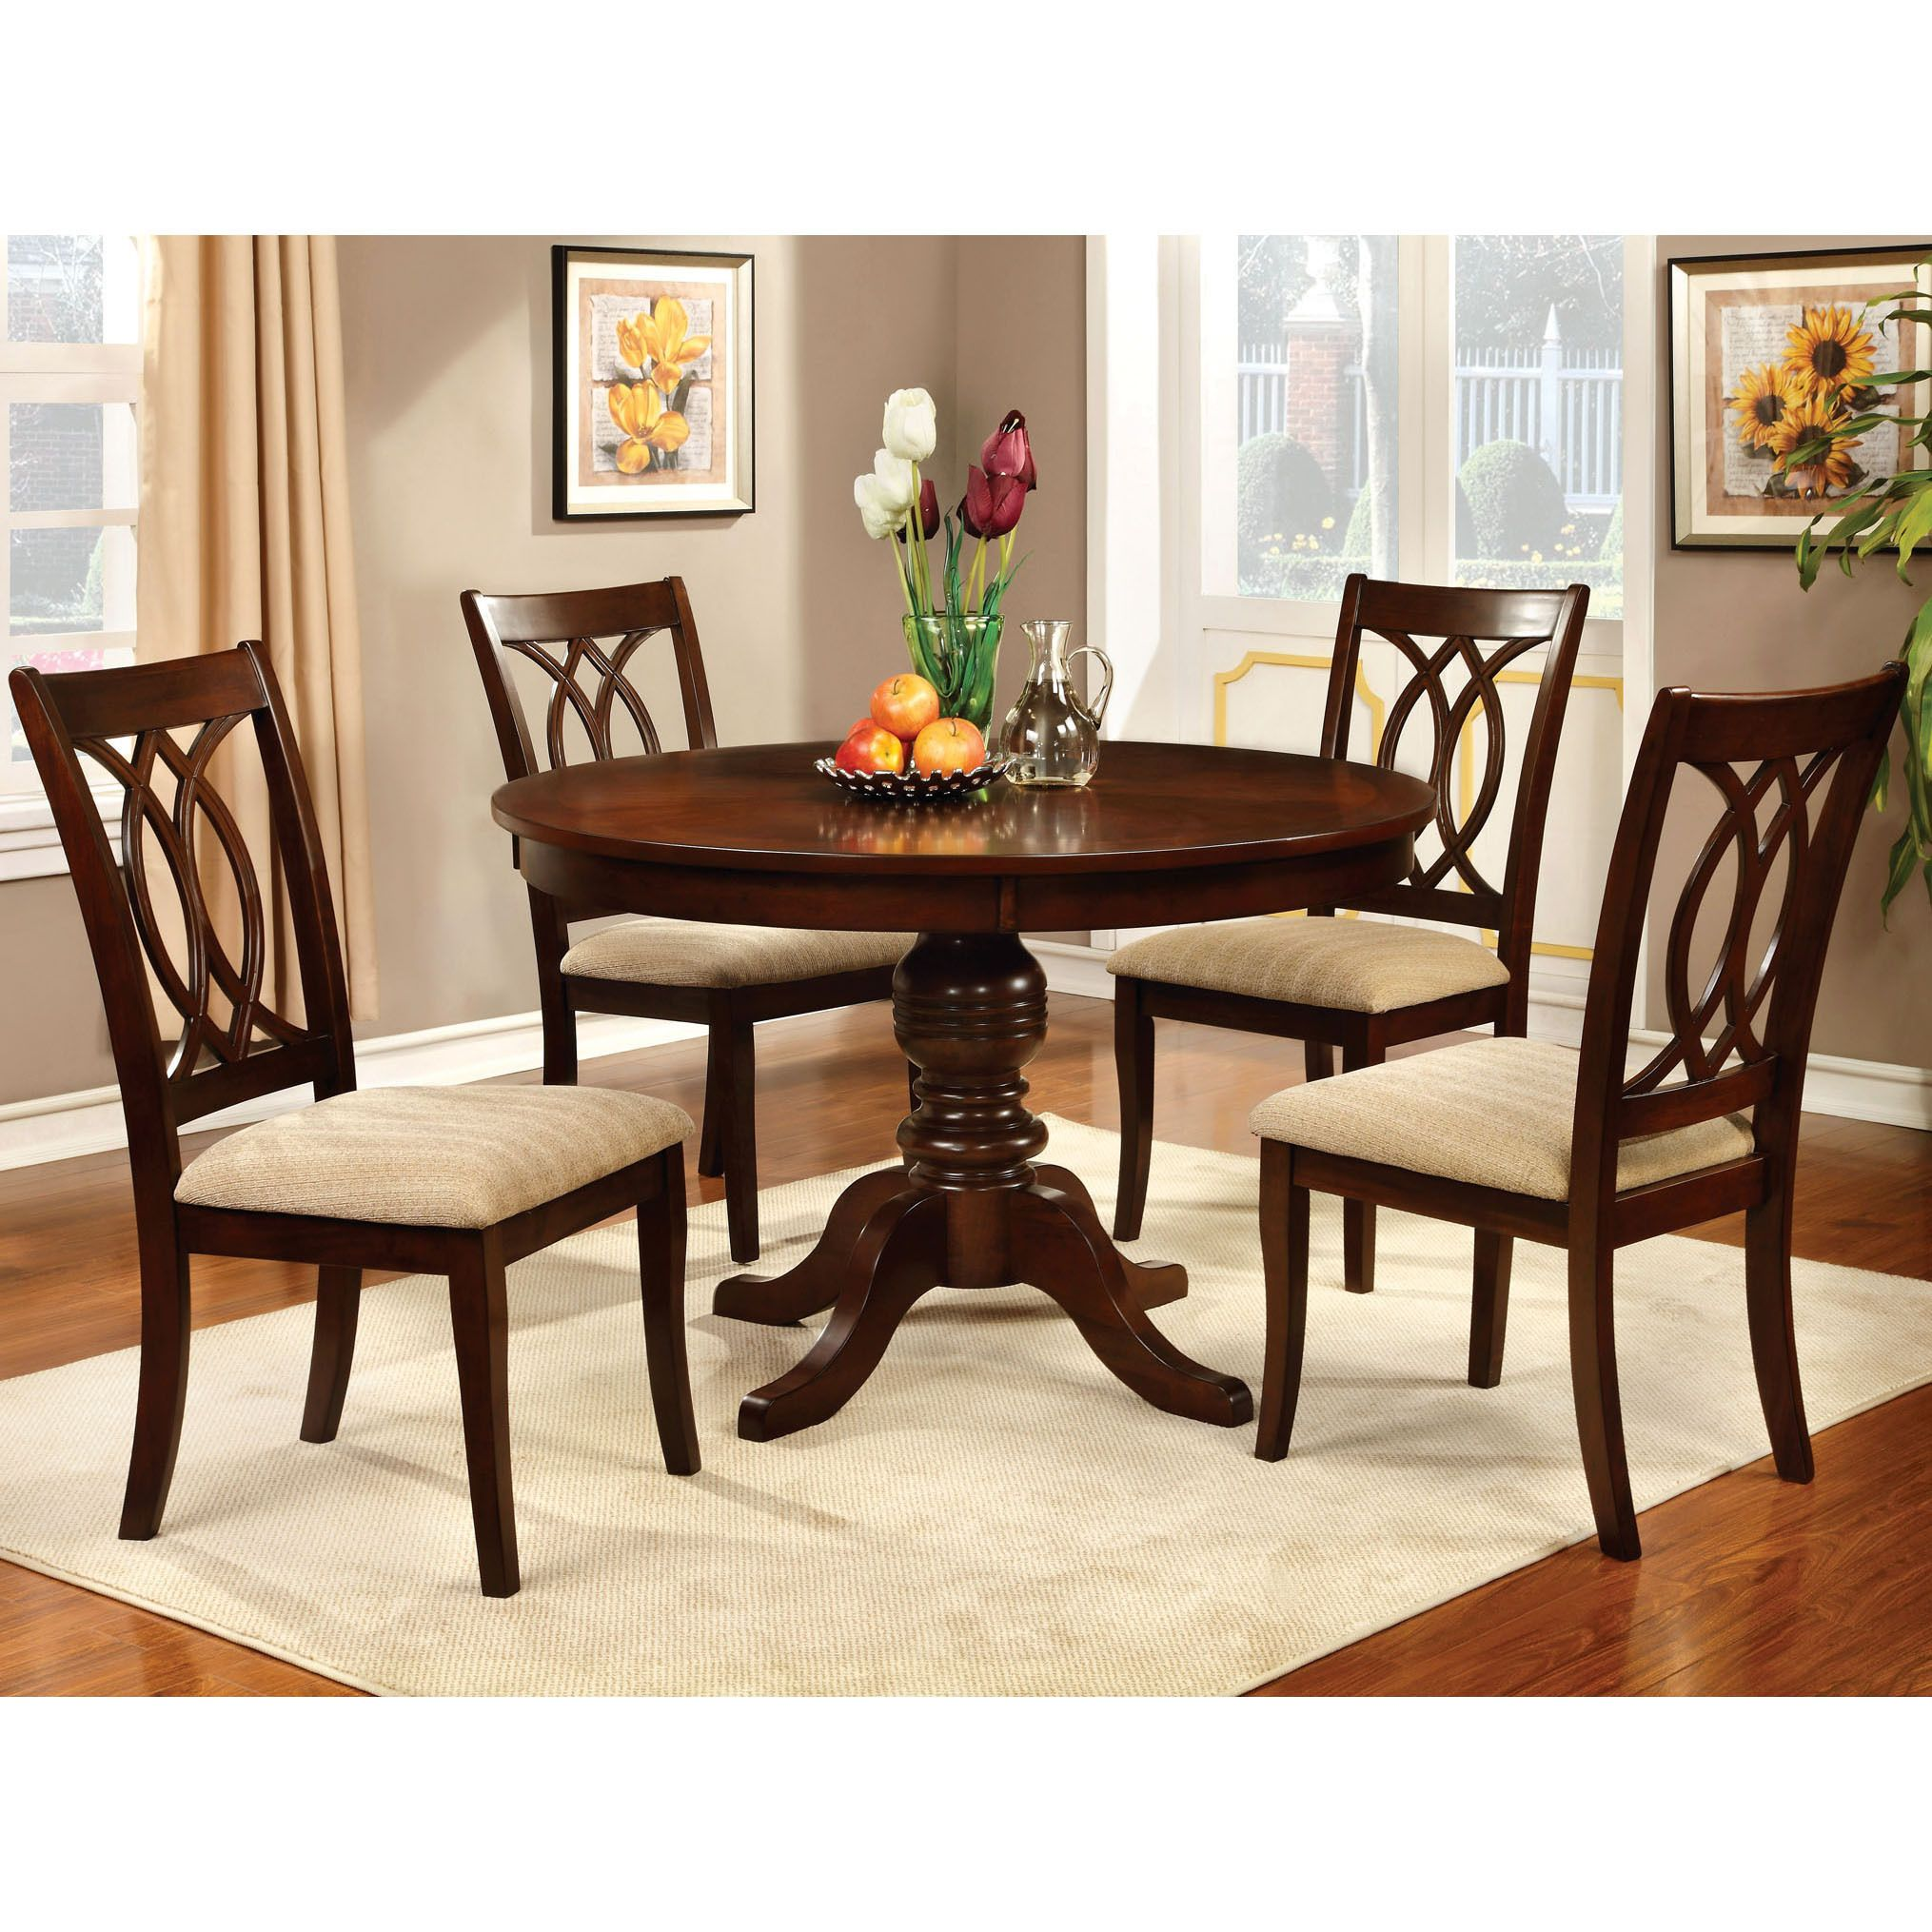 Furniture Of America Wole Country Cherry Solid Wood 5 Piece Dining Set Dining Room Sets Round Dining Table Sets Dining Room Small